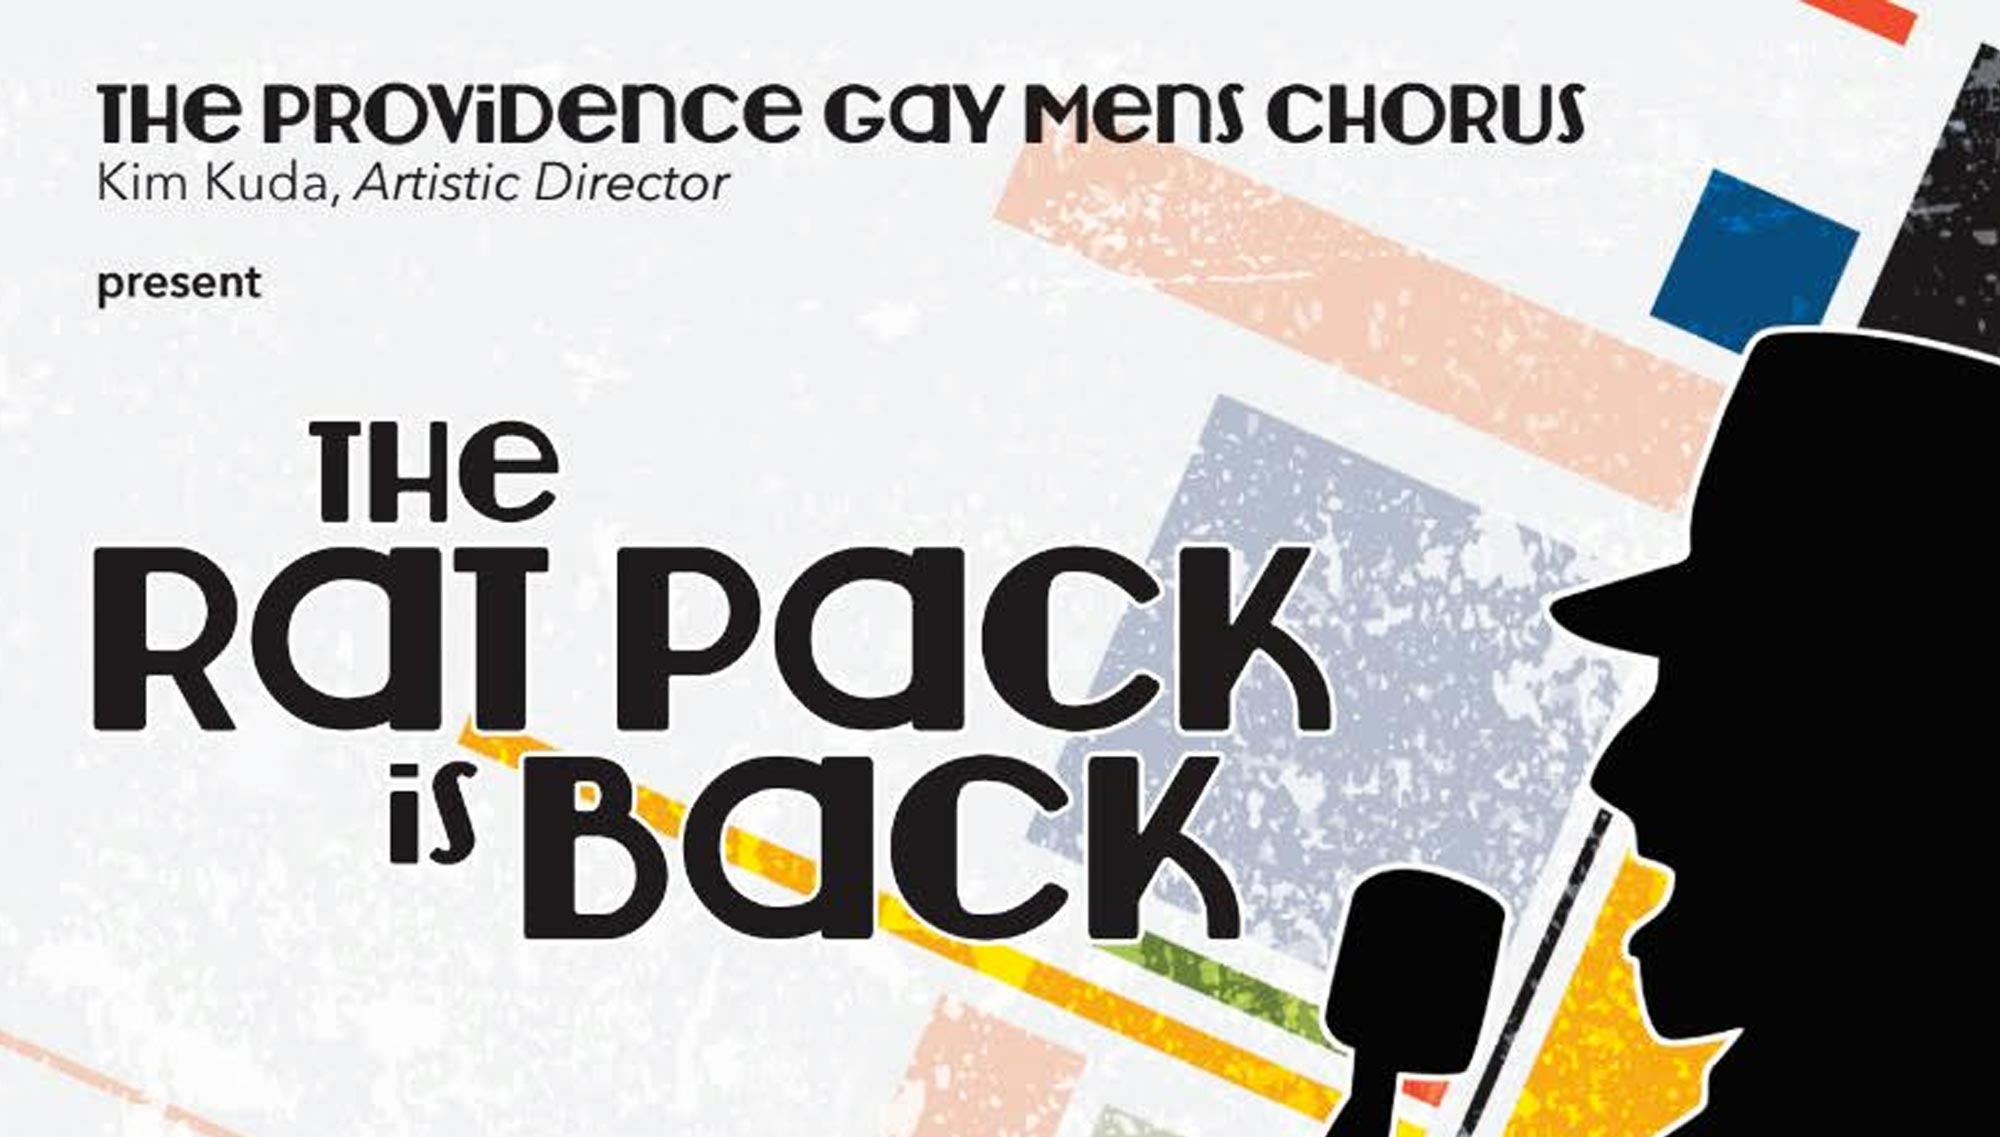 PROVIDENCE GAY MEN'S CHORUS   <h6>PRESENT THE RAT PACK IS BACK  </h6><h5>June 2-4  </h5>